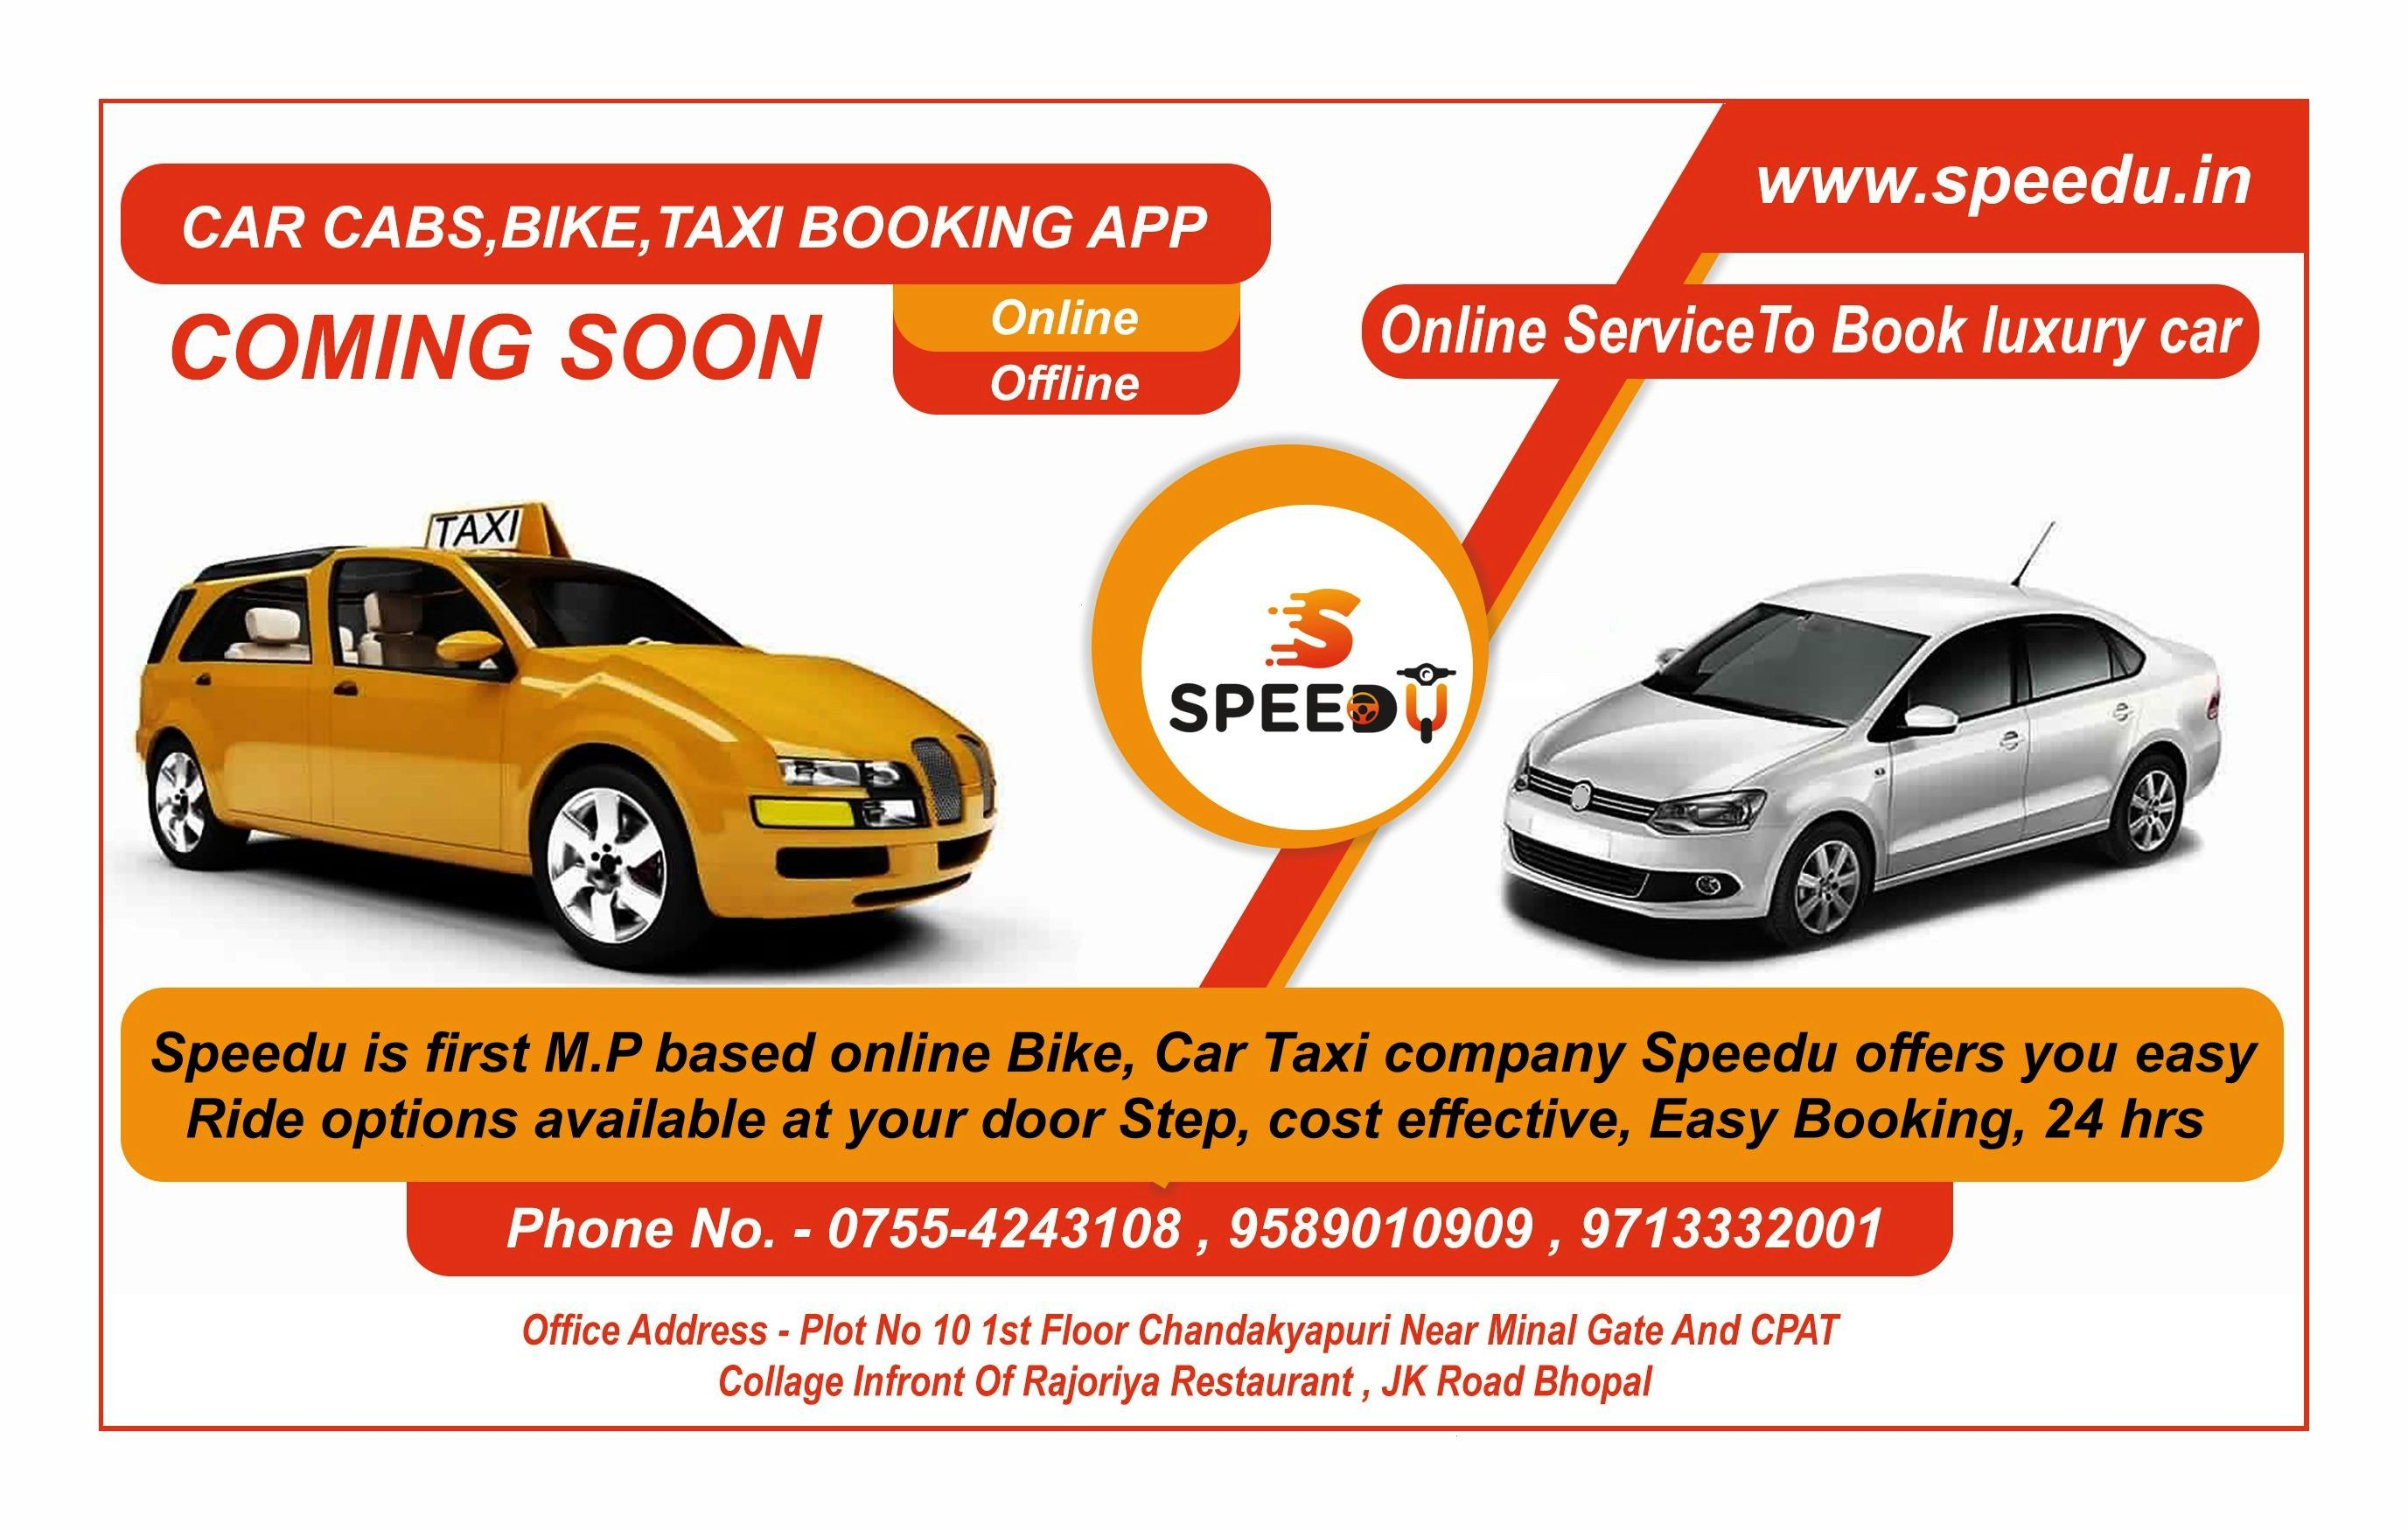 SpeedU is first MP based SpeedU offers you options at your door Step cost effective Easy Booking 24 hrs serviceSpeedU is first MP based SpeedU offers you options at your...